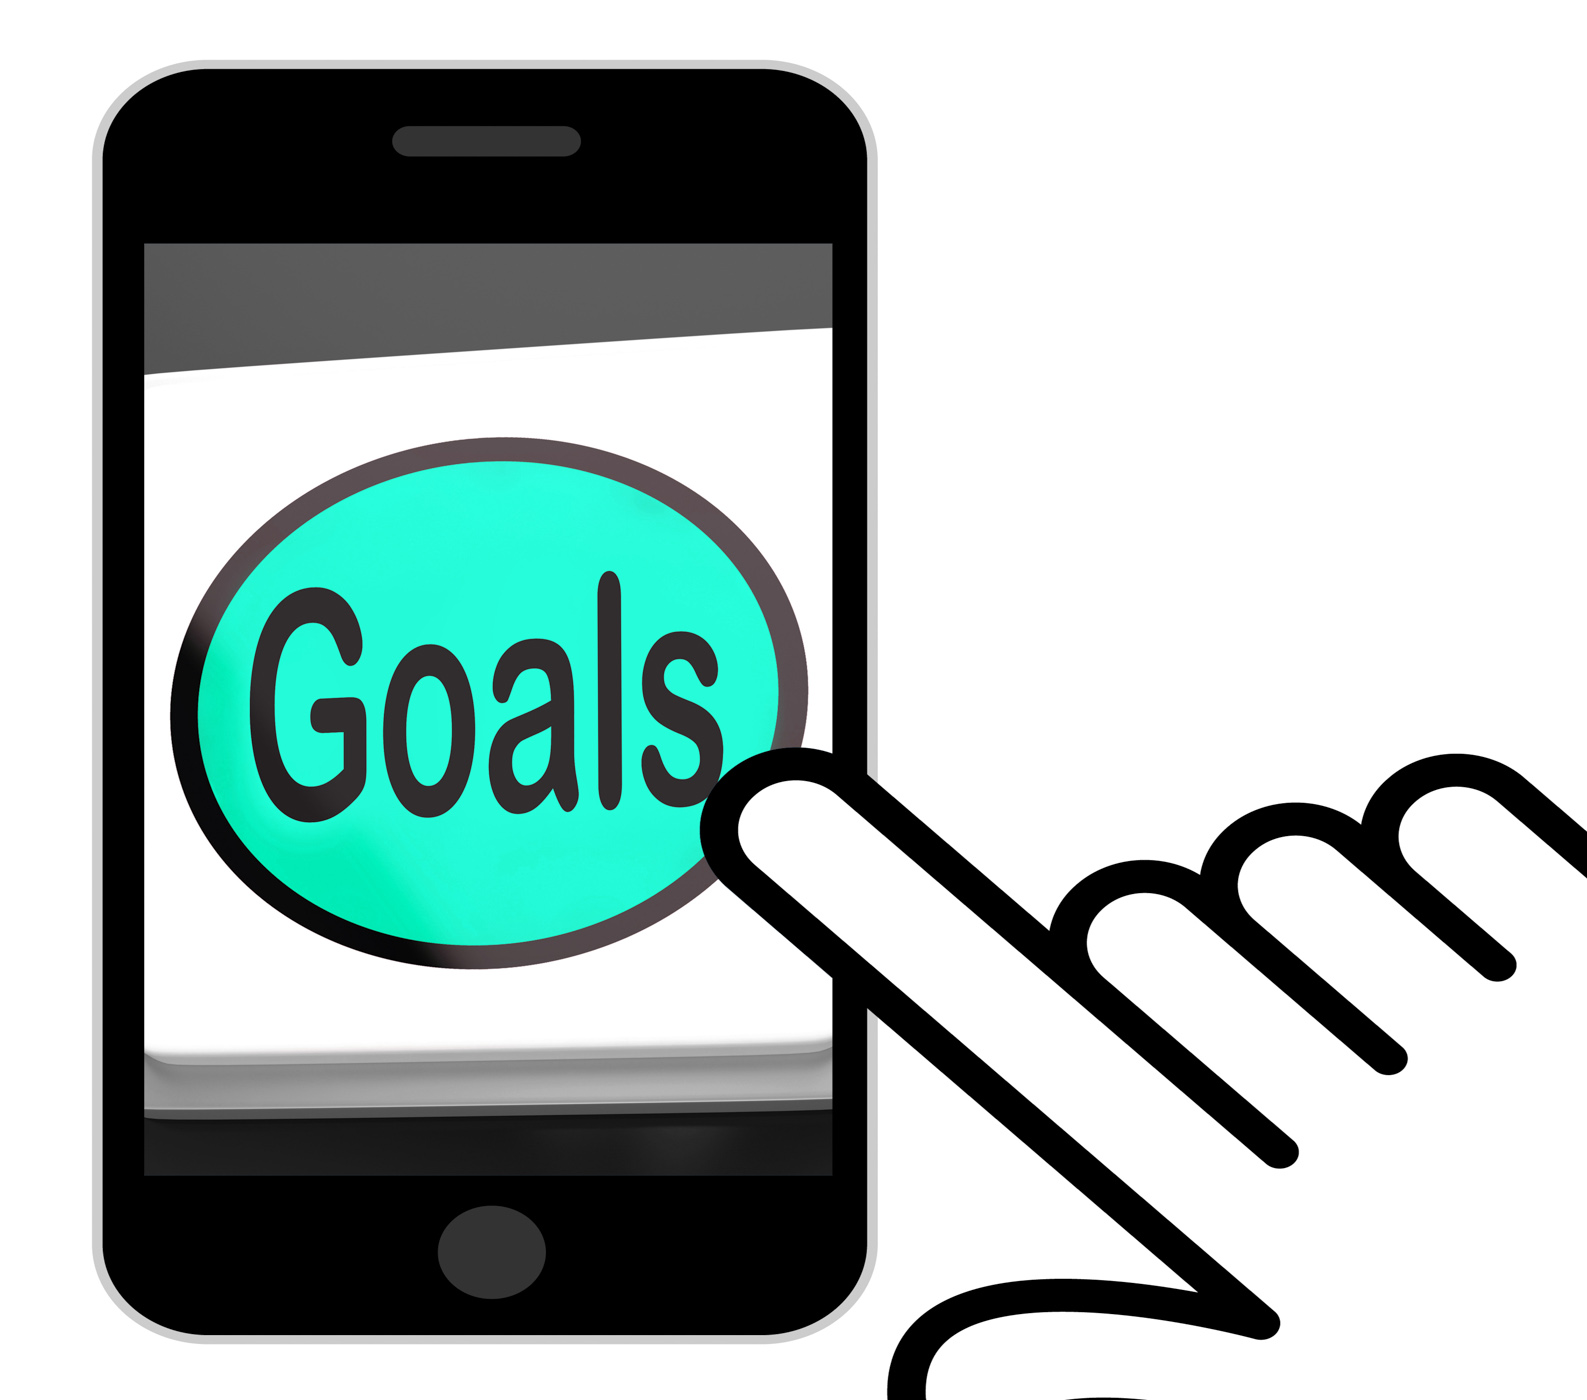 Goals button displays aims objectives or aspirations photo